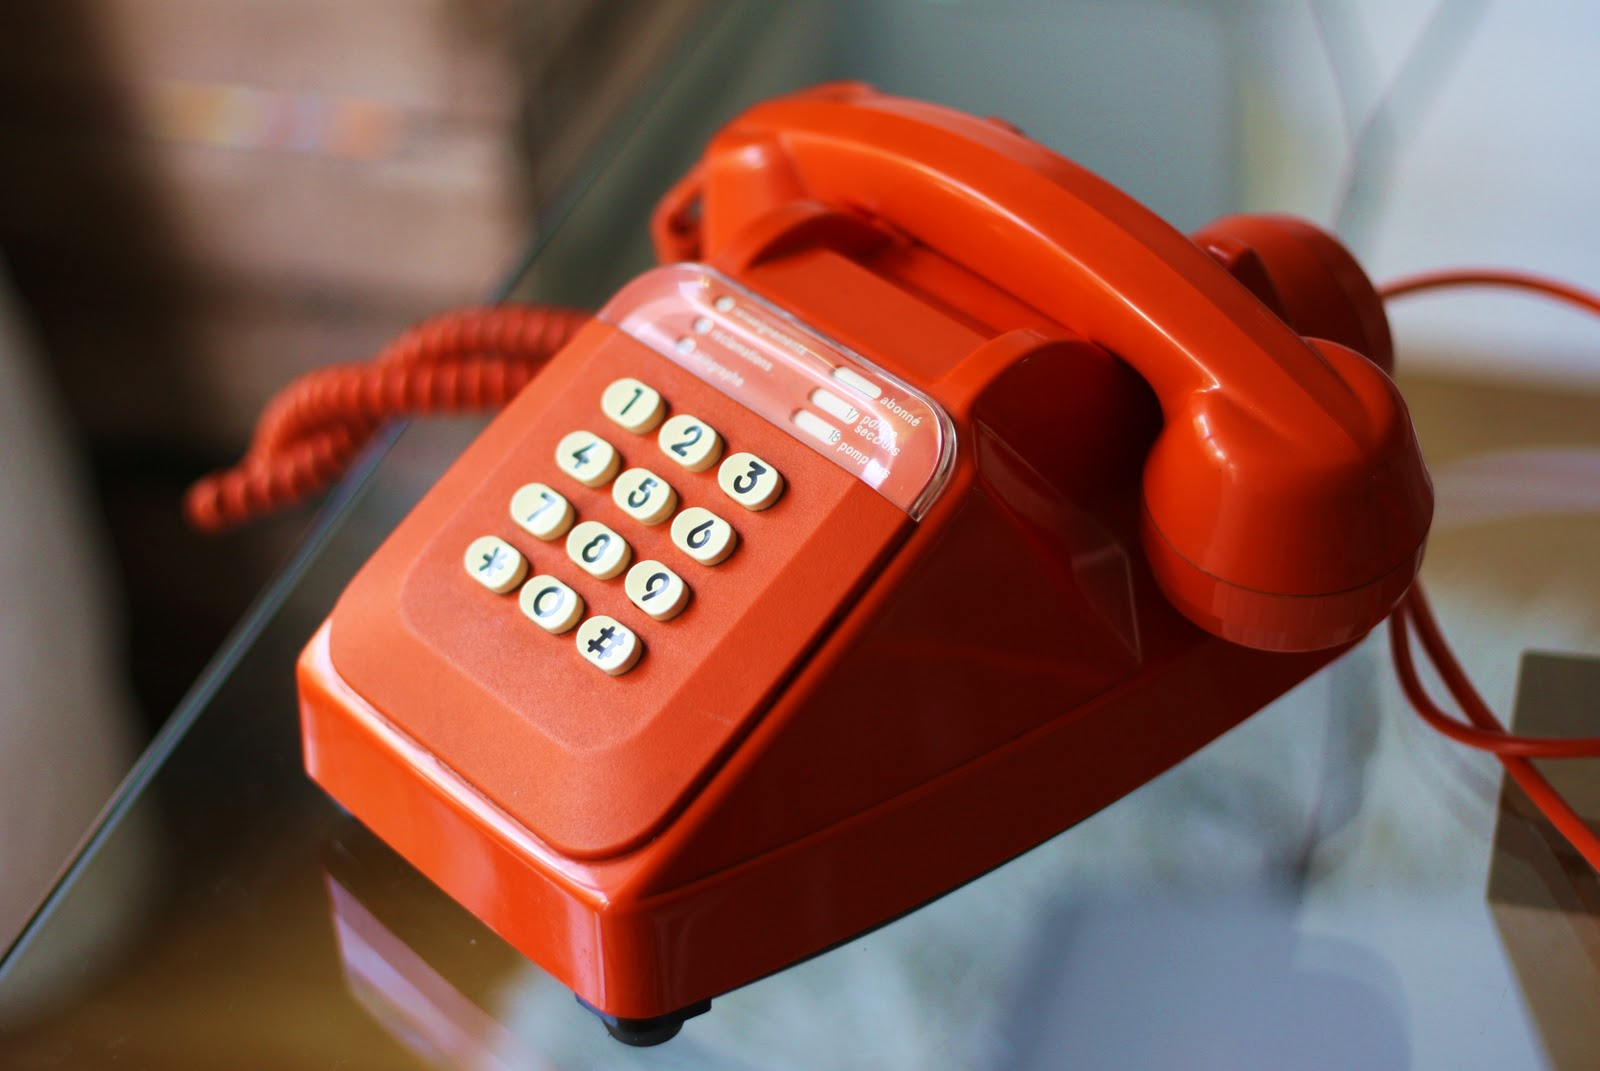 how to get rid of landline and keep internet